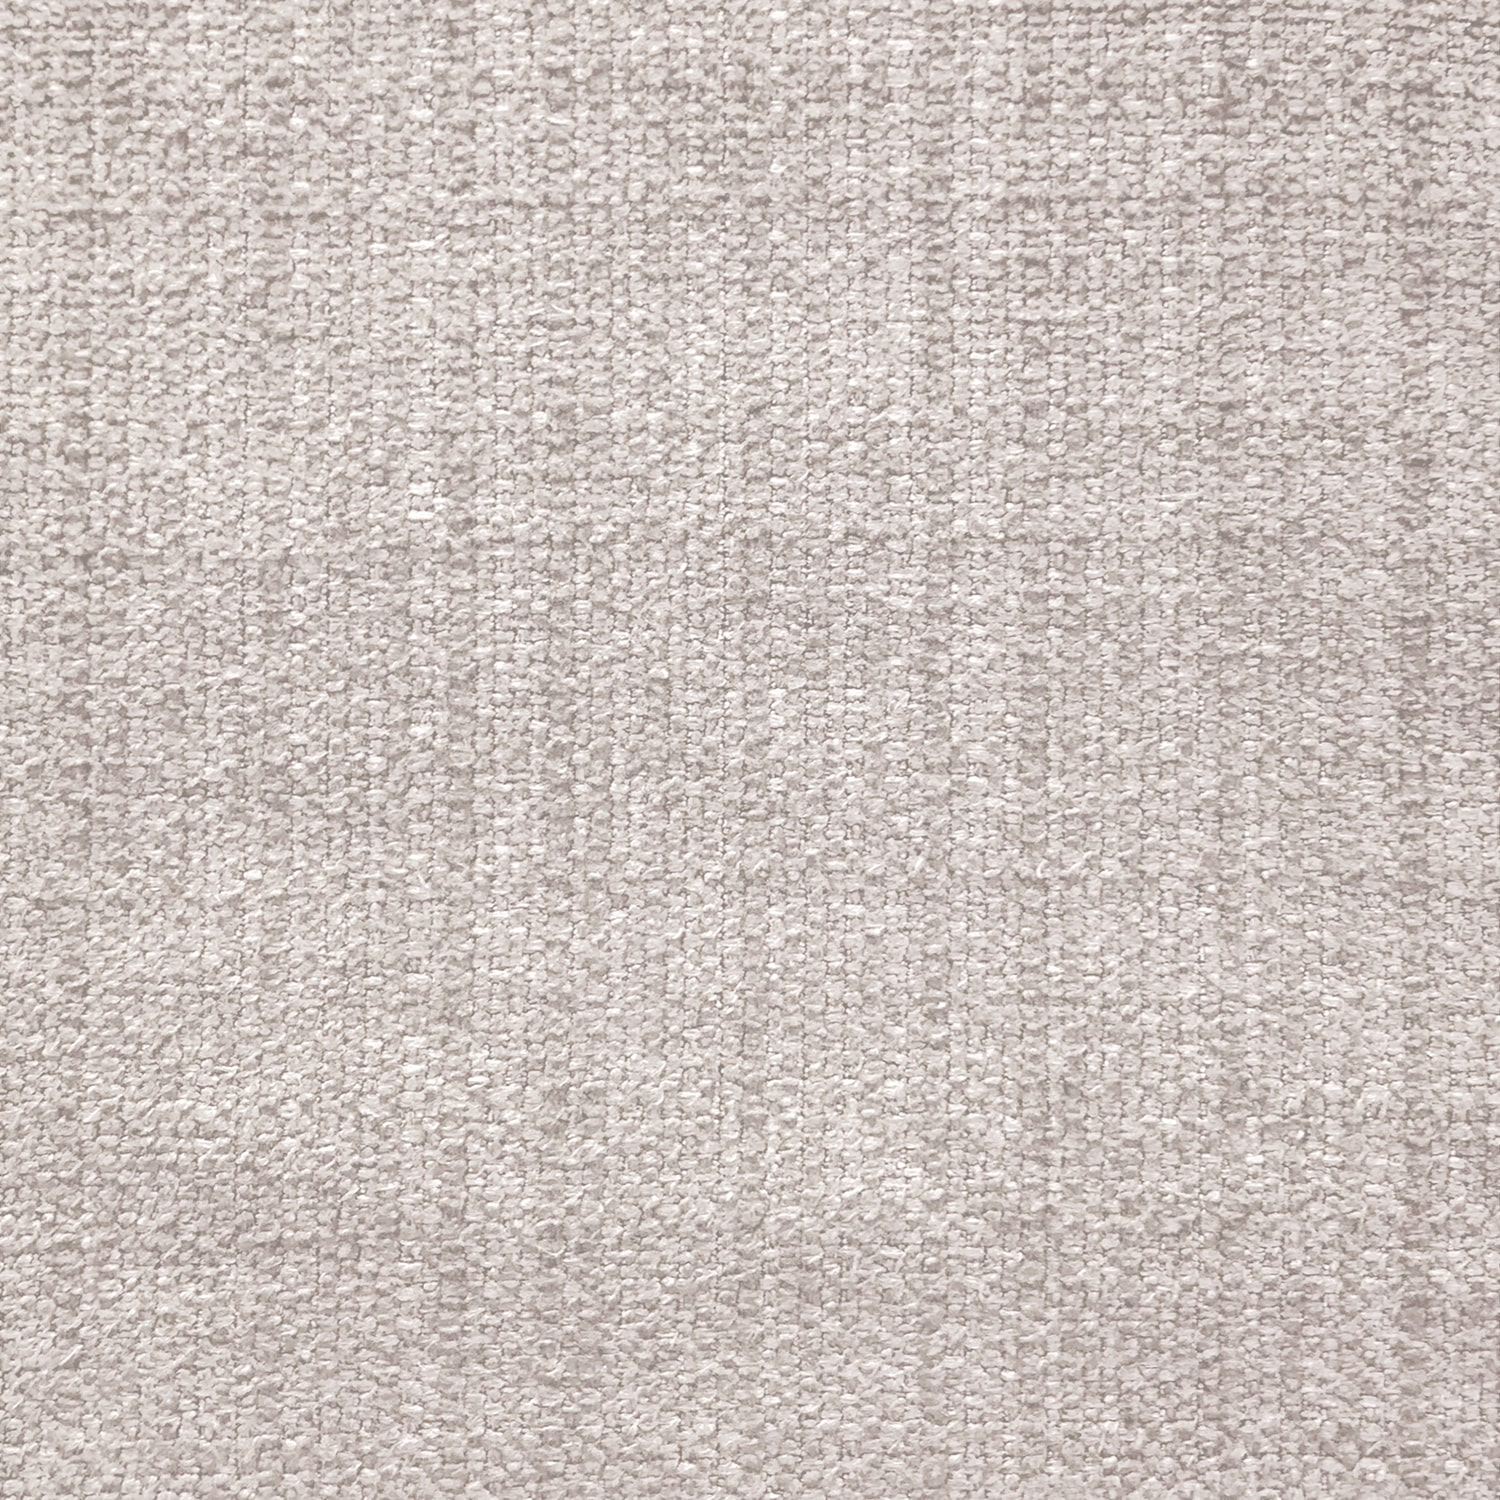 Hanson Gray (grade #1): HS-1-20<br>Cleans with water; soft, flat medium weave